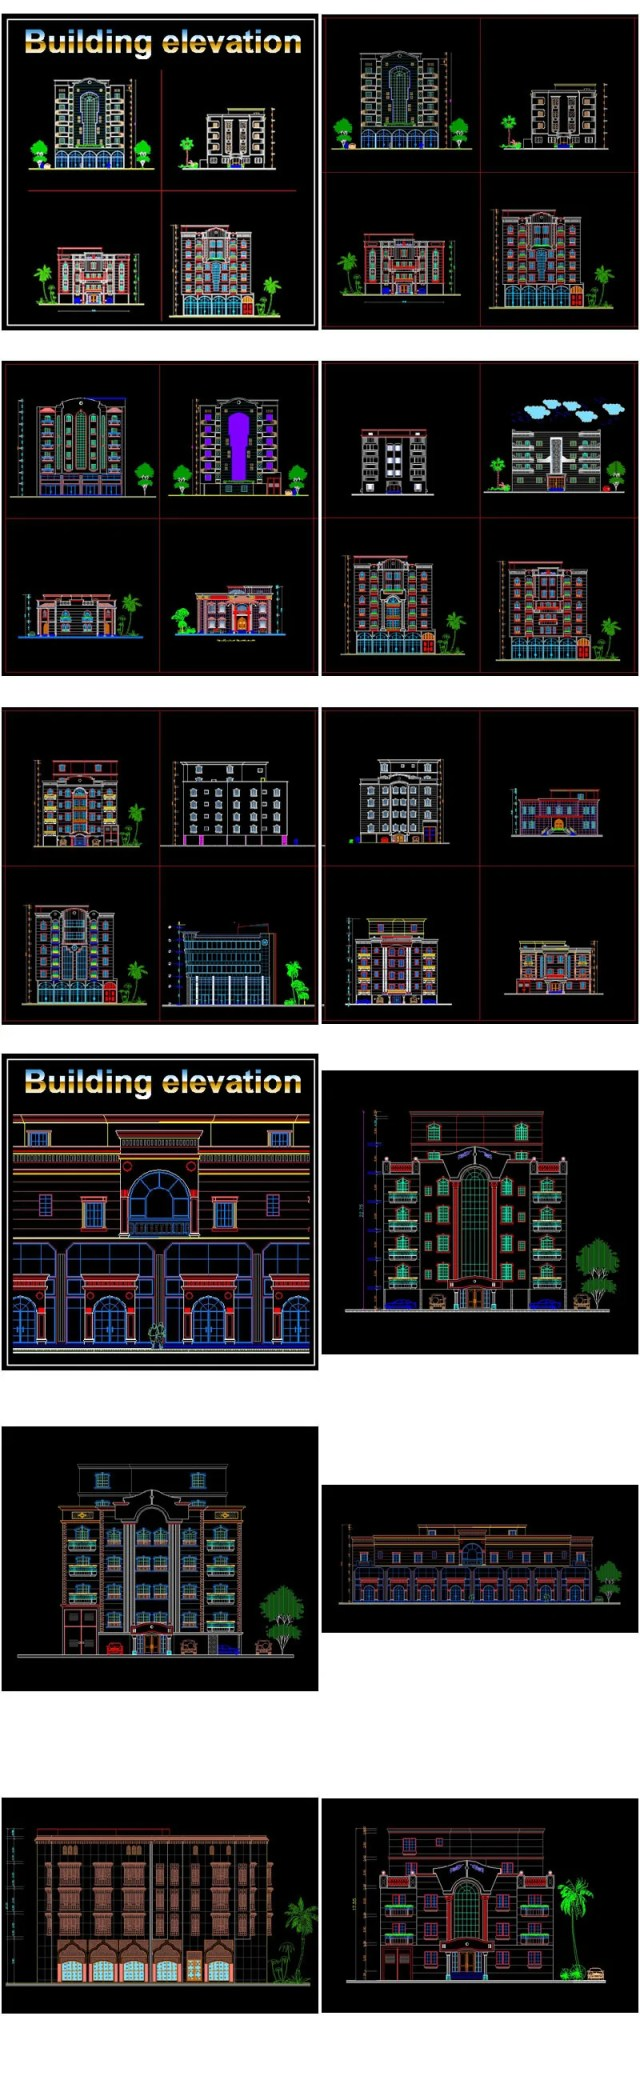 【All Building Elevation CAD Drawing Collections】(Best Collections!!)